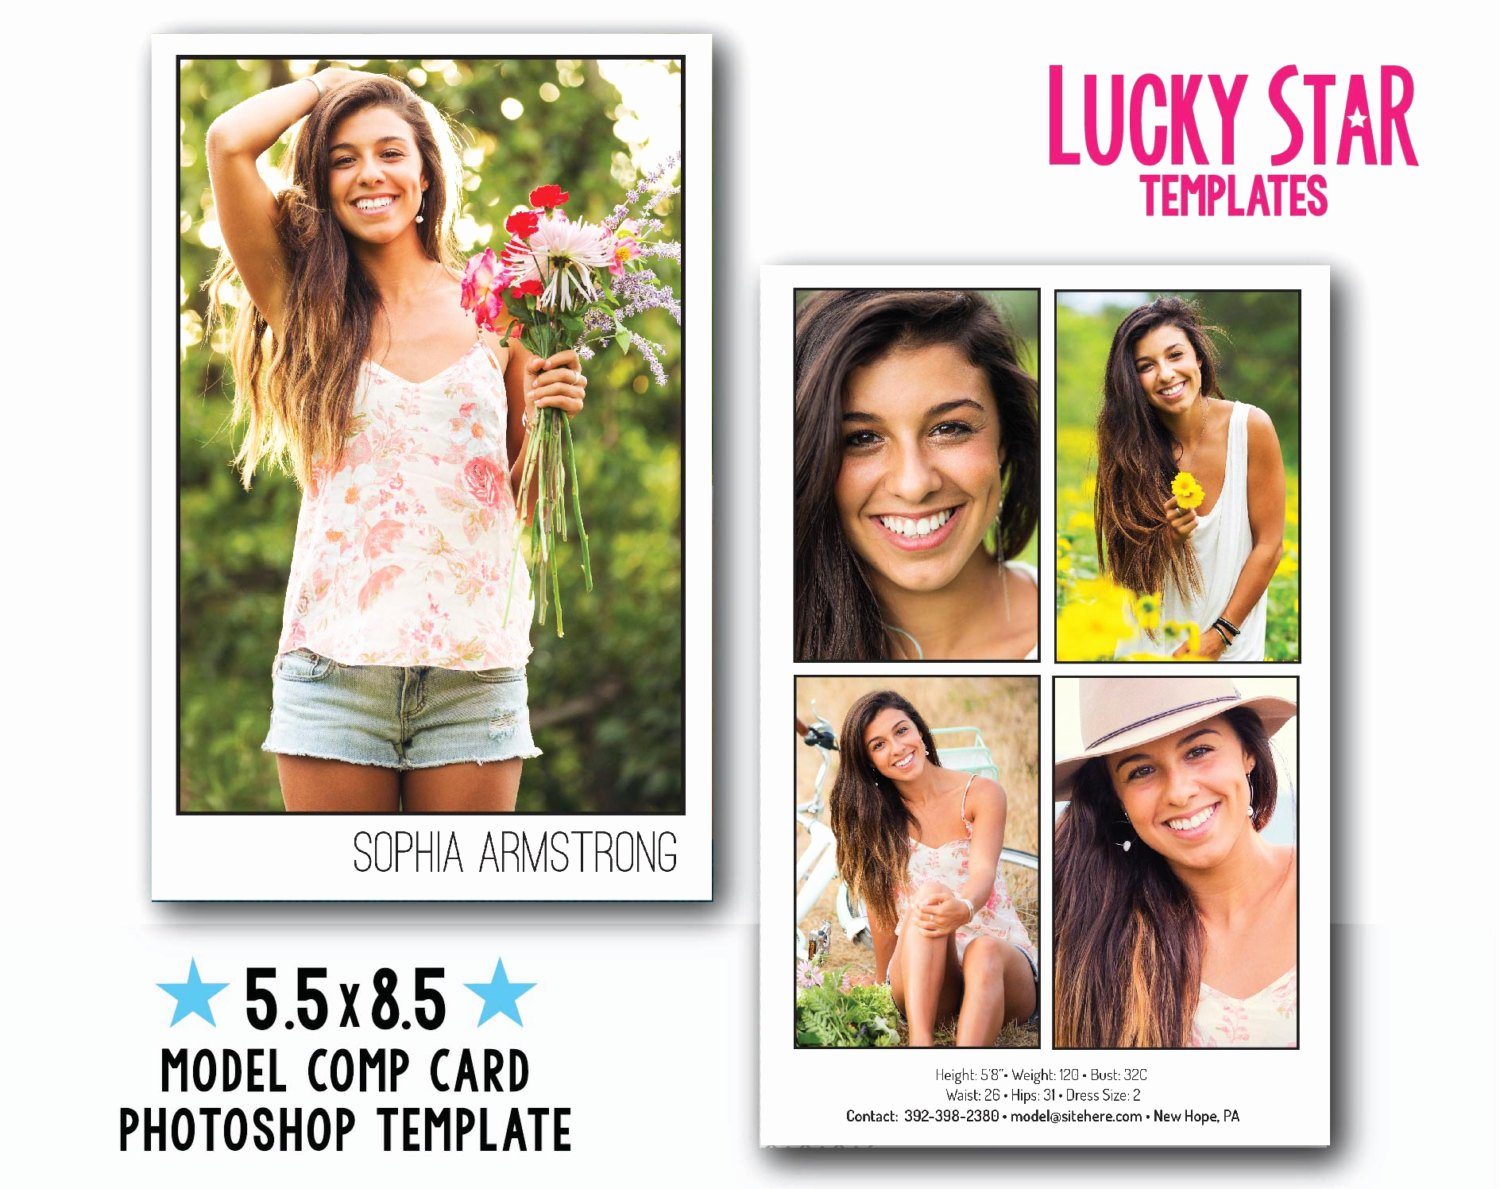 Comp Card Template Free Awesome Customizable Digital Model P Card Power Portraits